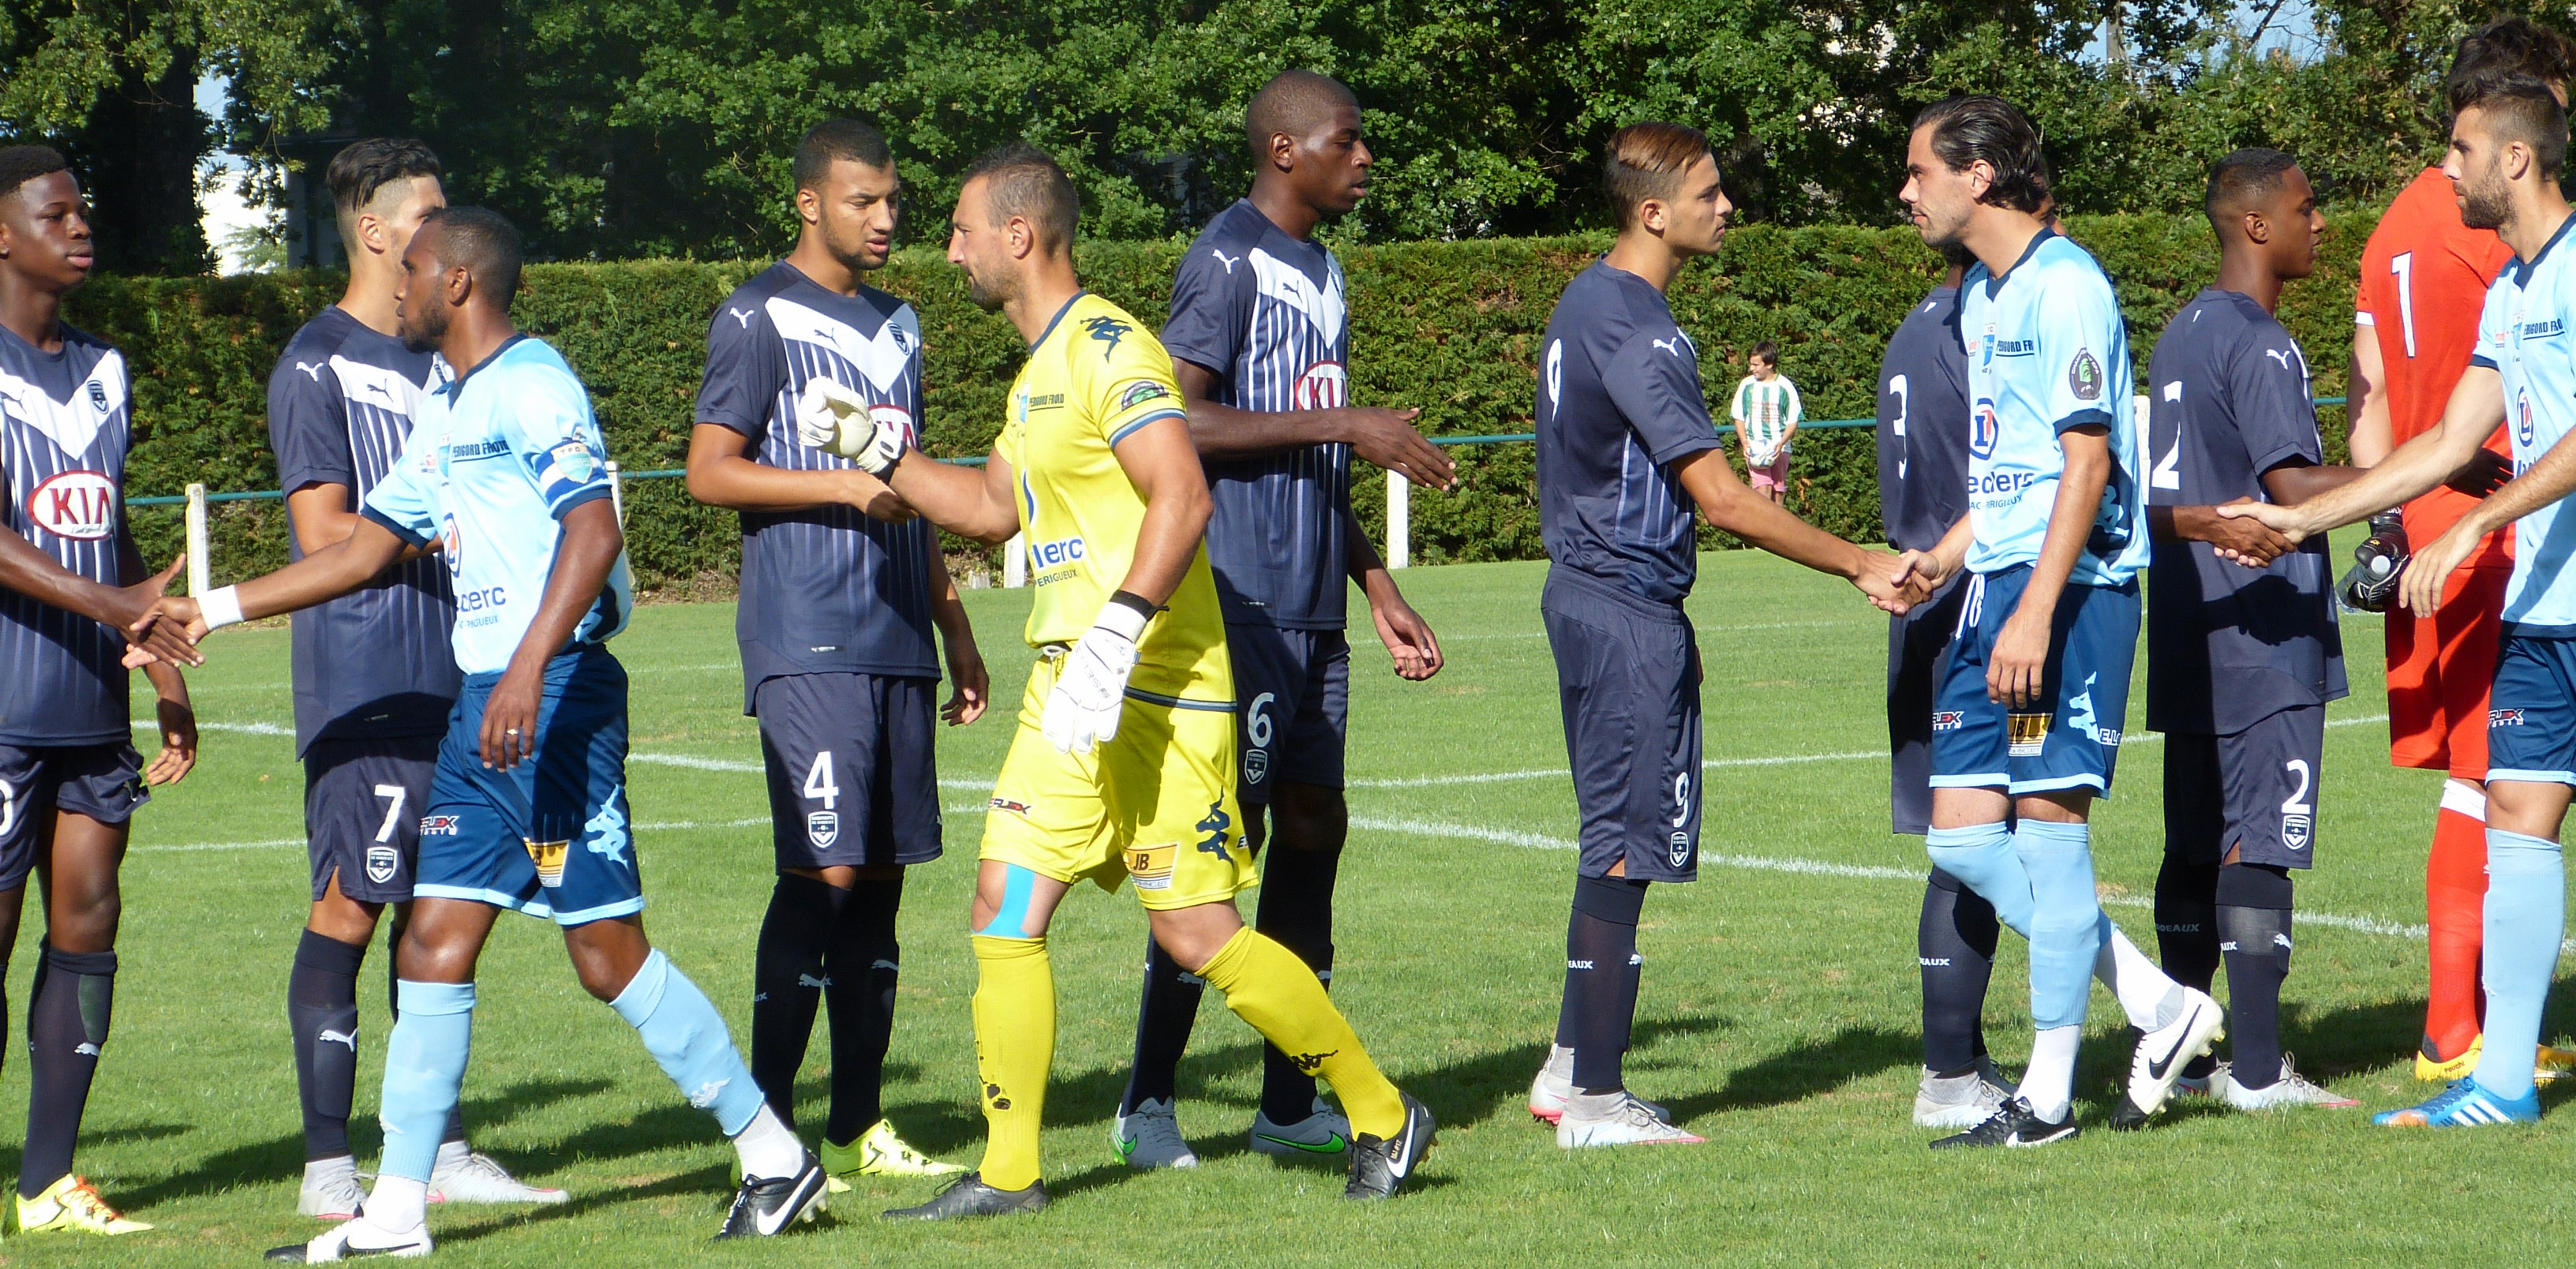 Cfa Girondins : Victoire 2-0 face à Lège-Cap-Ferret (amical) - Formation Girondins